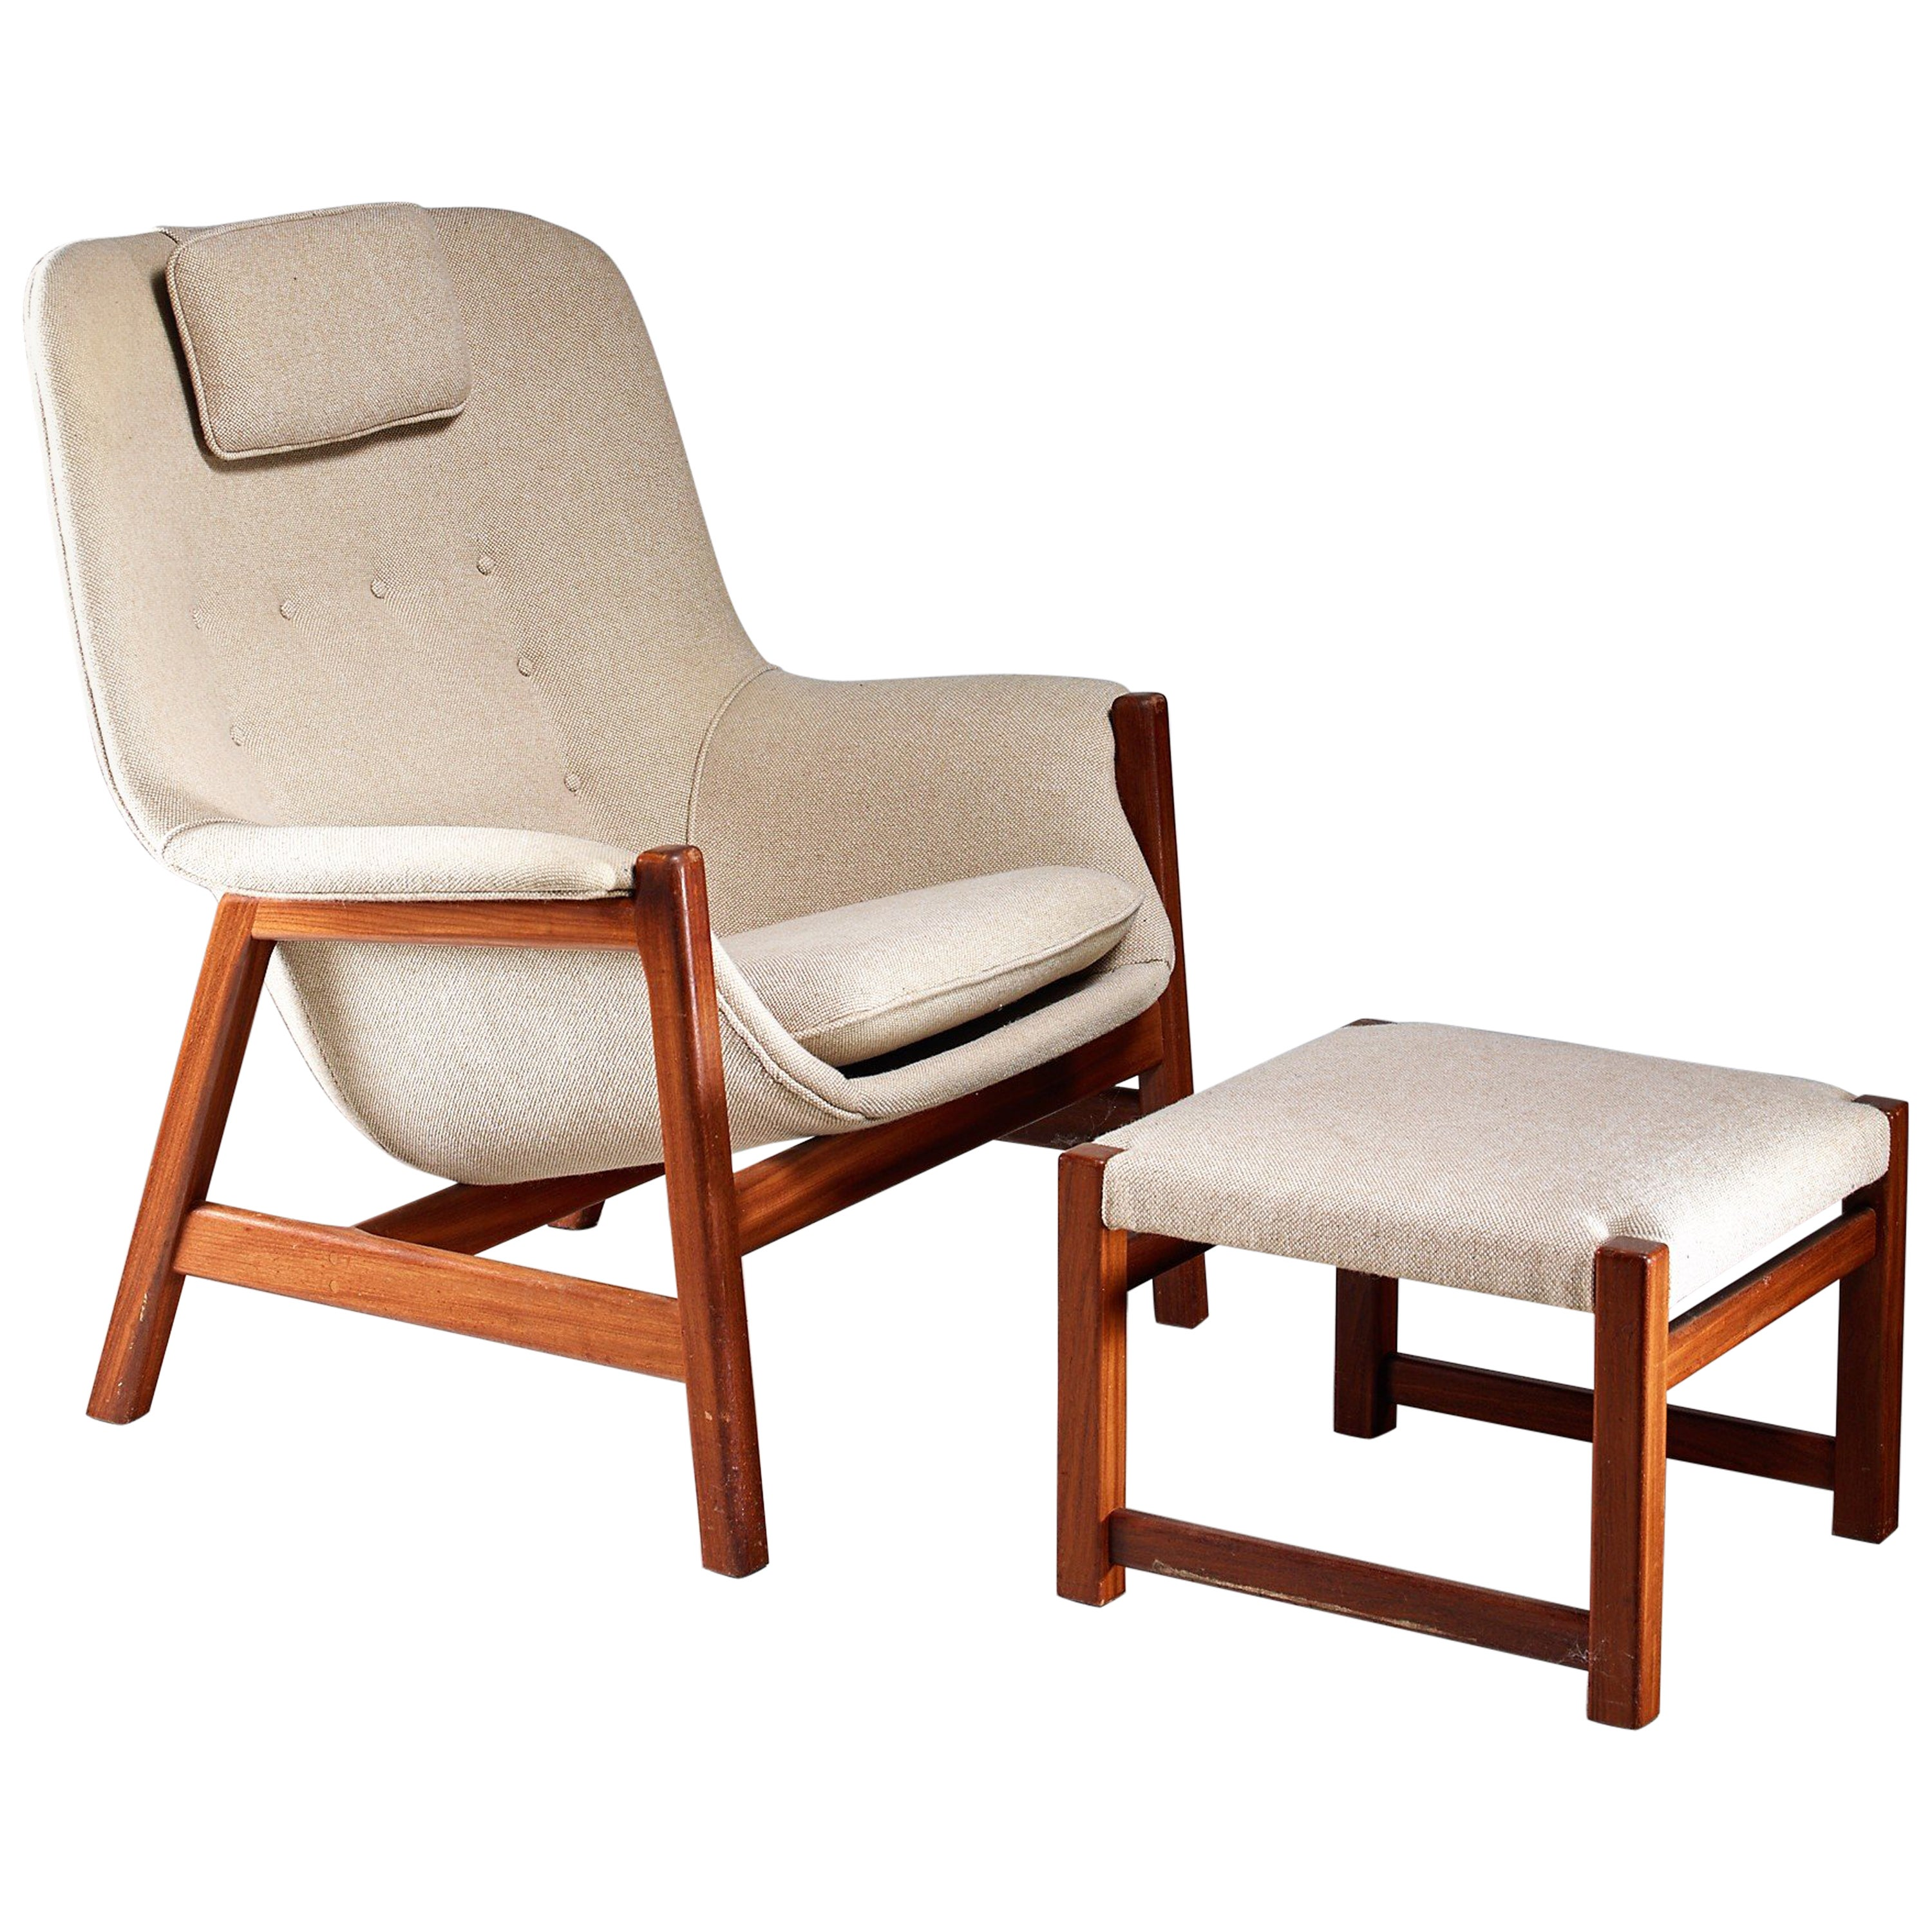 Carl-Gustav Hiort af Ornäs Lounge Chair with Ottoman, Finland, 1950s